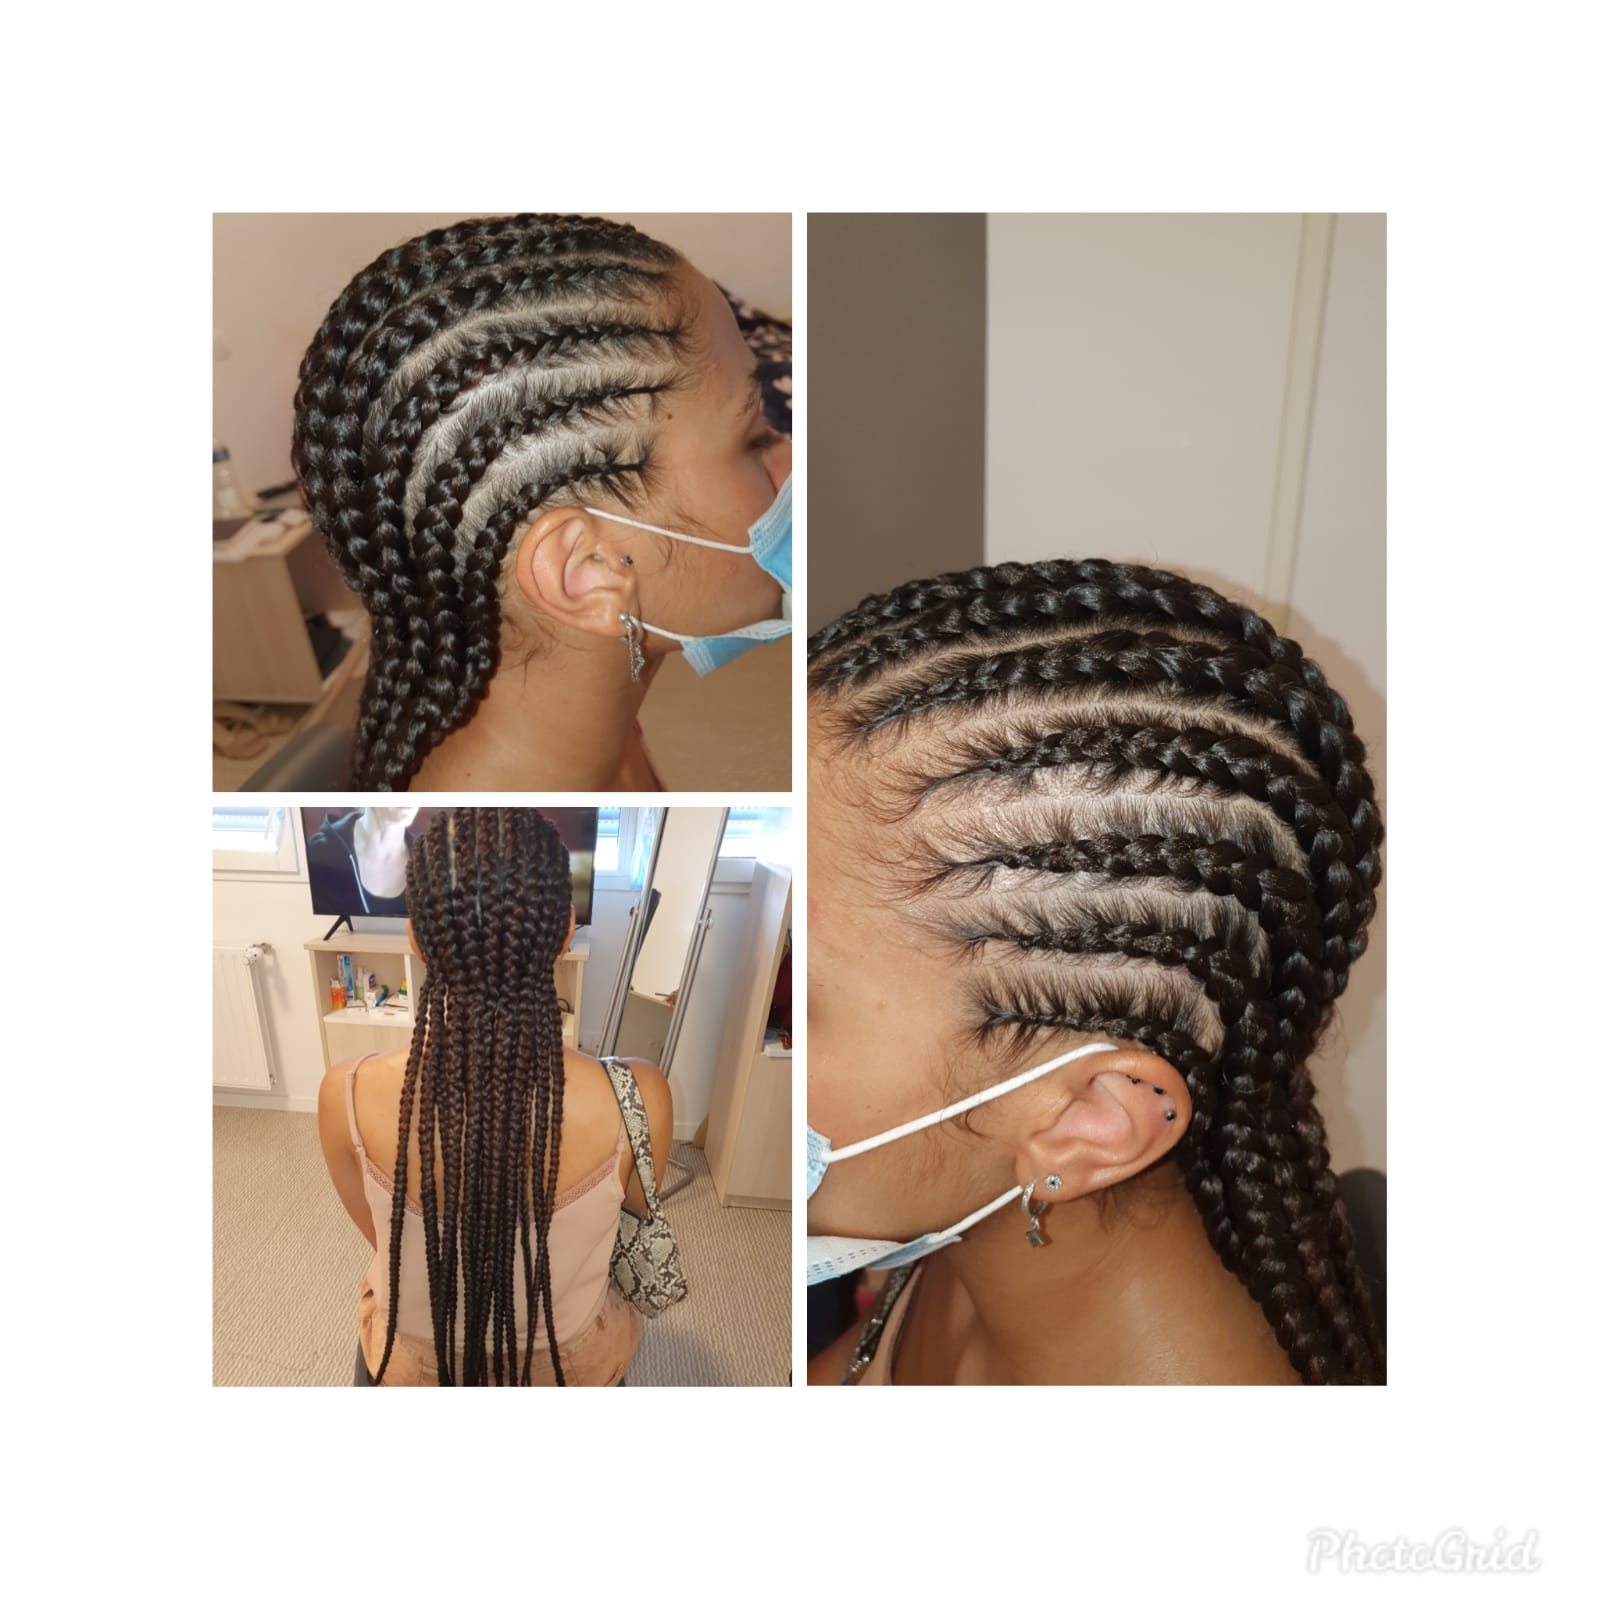 salon de coiffure afro tresse tresses box braids crochet braids vanilles tissages paris 75 77 78 91 92 93 94 95 VAENTWHW